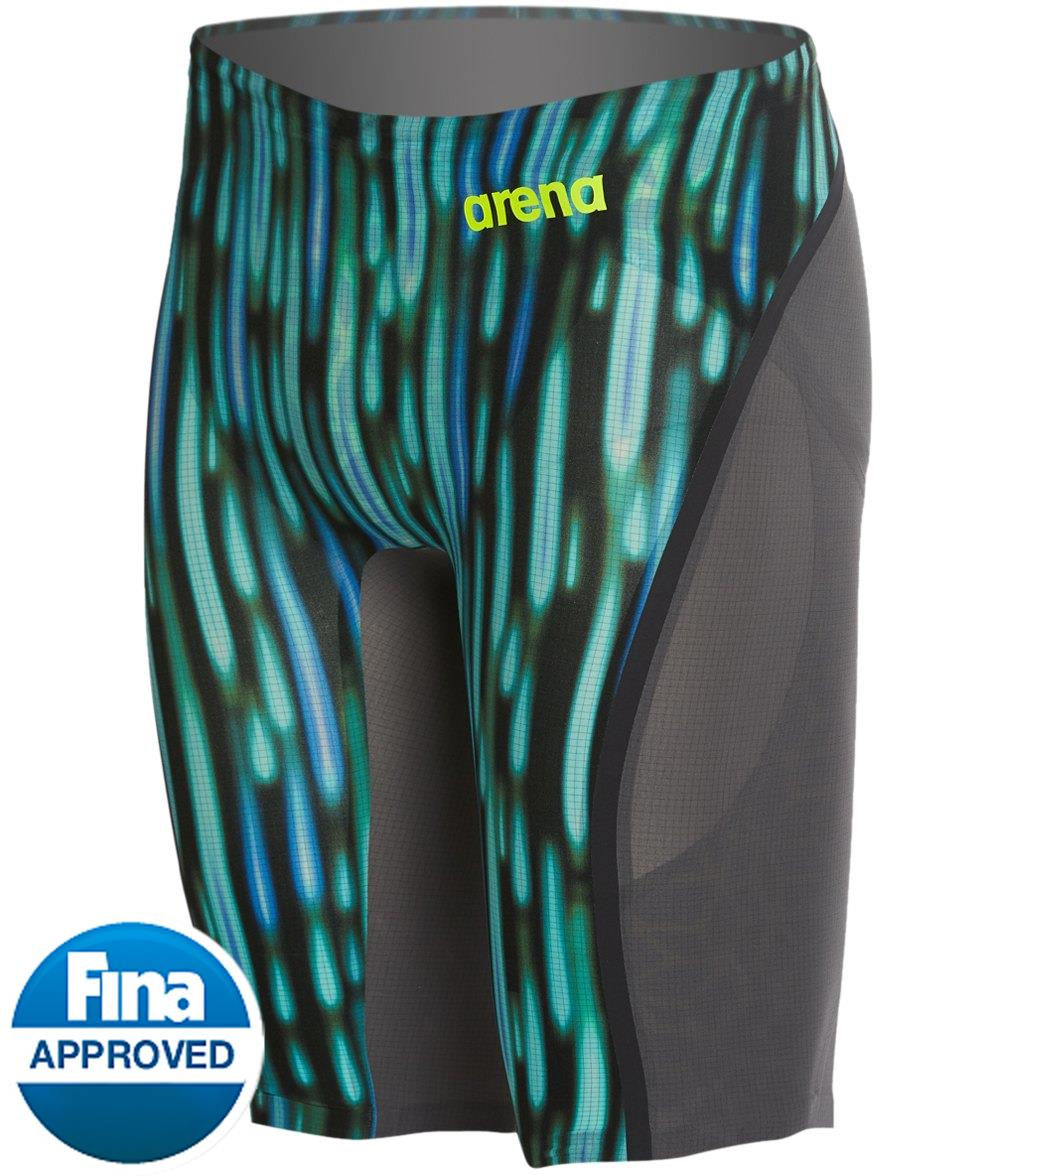 c8681598fa4dd Arena Men's Powerskin Carbon Ultra Limited Edition Jammer Tech Suit  Swimsuit at SwimOutlet.com - Free Shipping